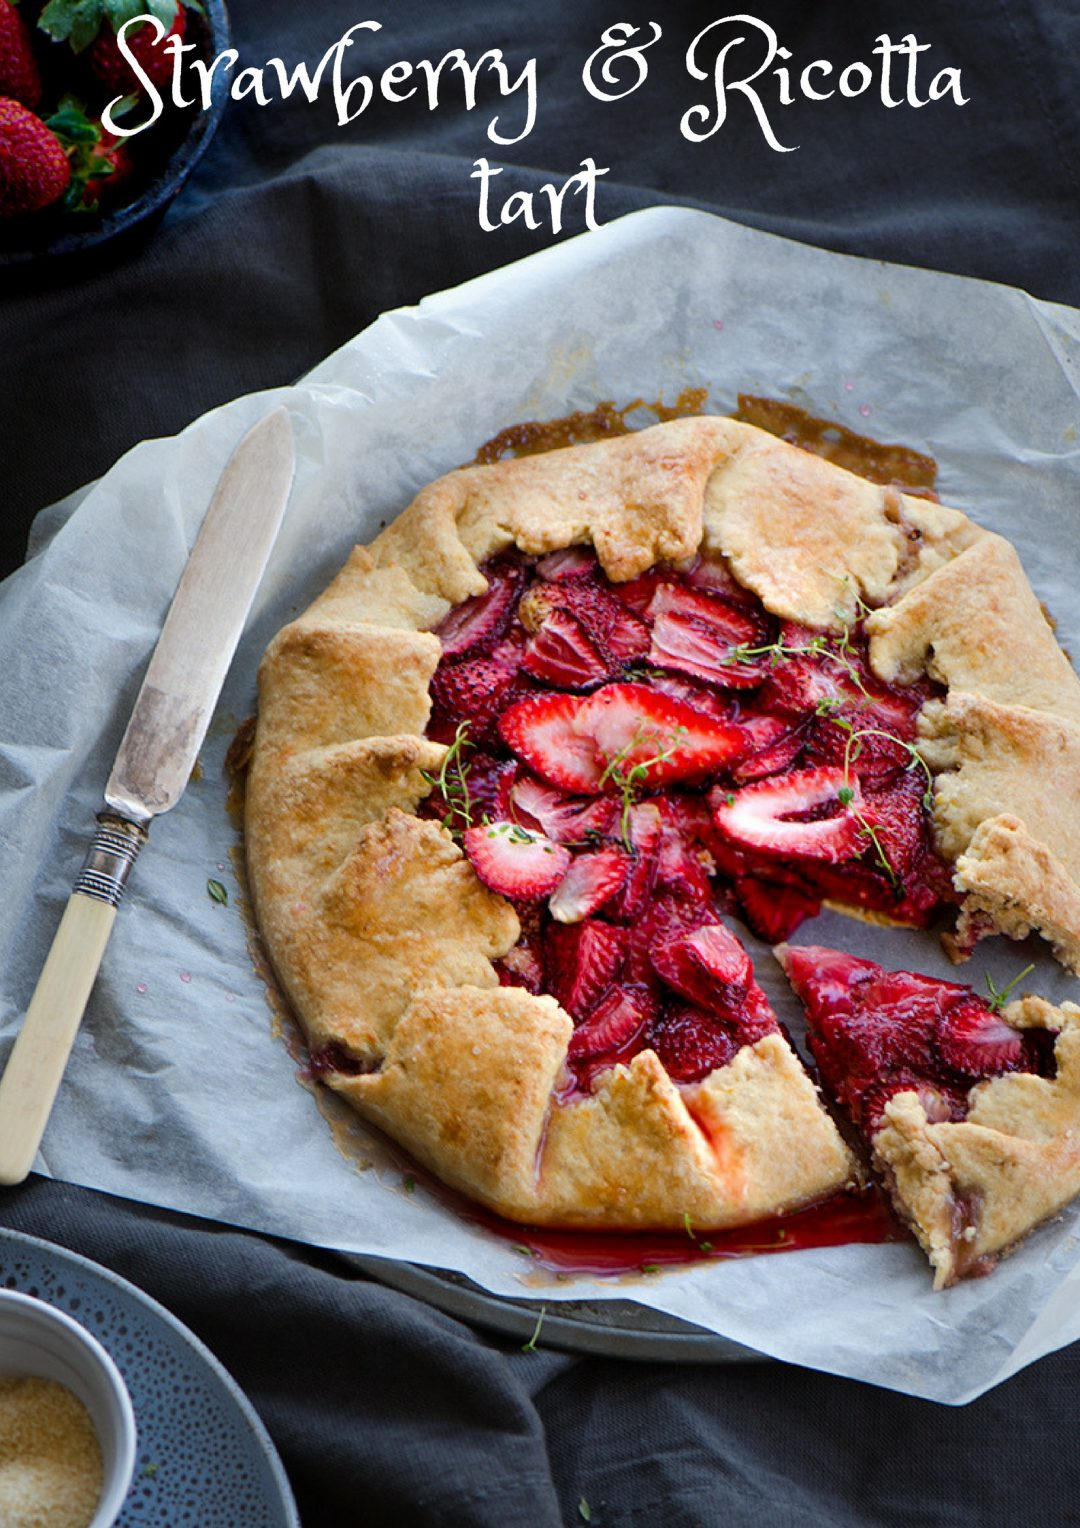 Strawberry Ricotta tart